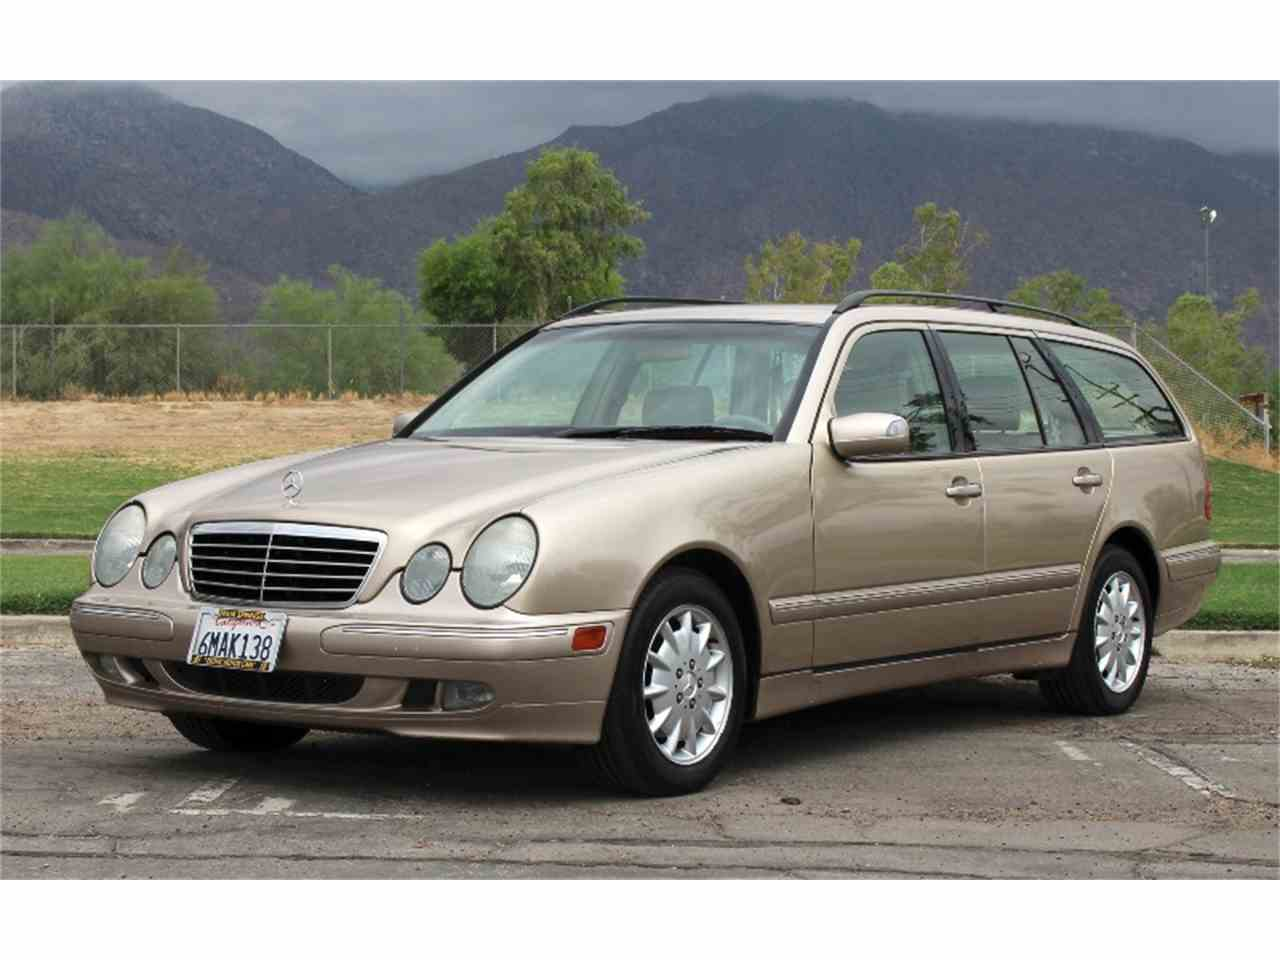 2000 mercedes benz e320 wagon for sale